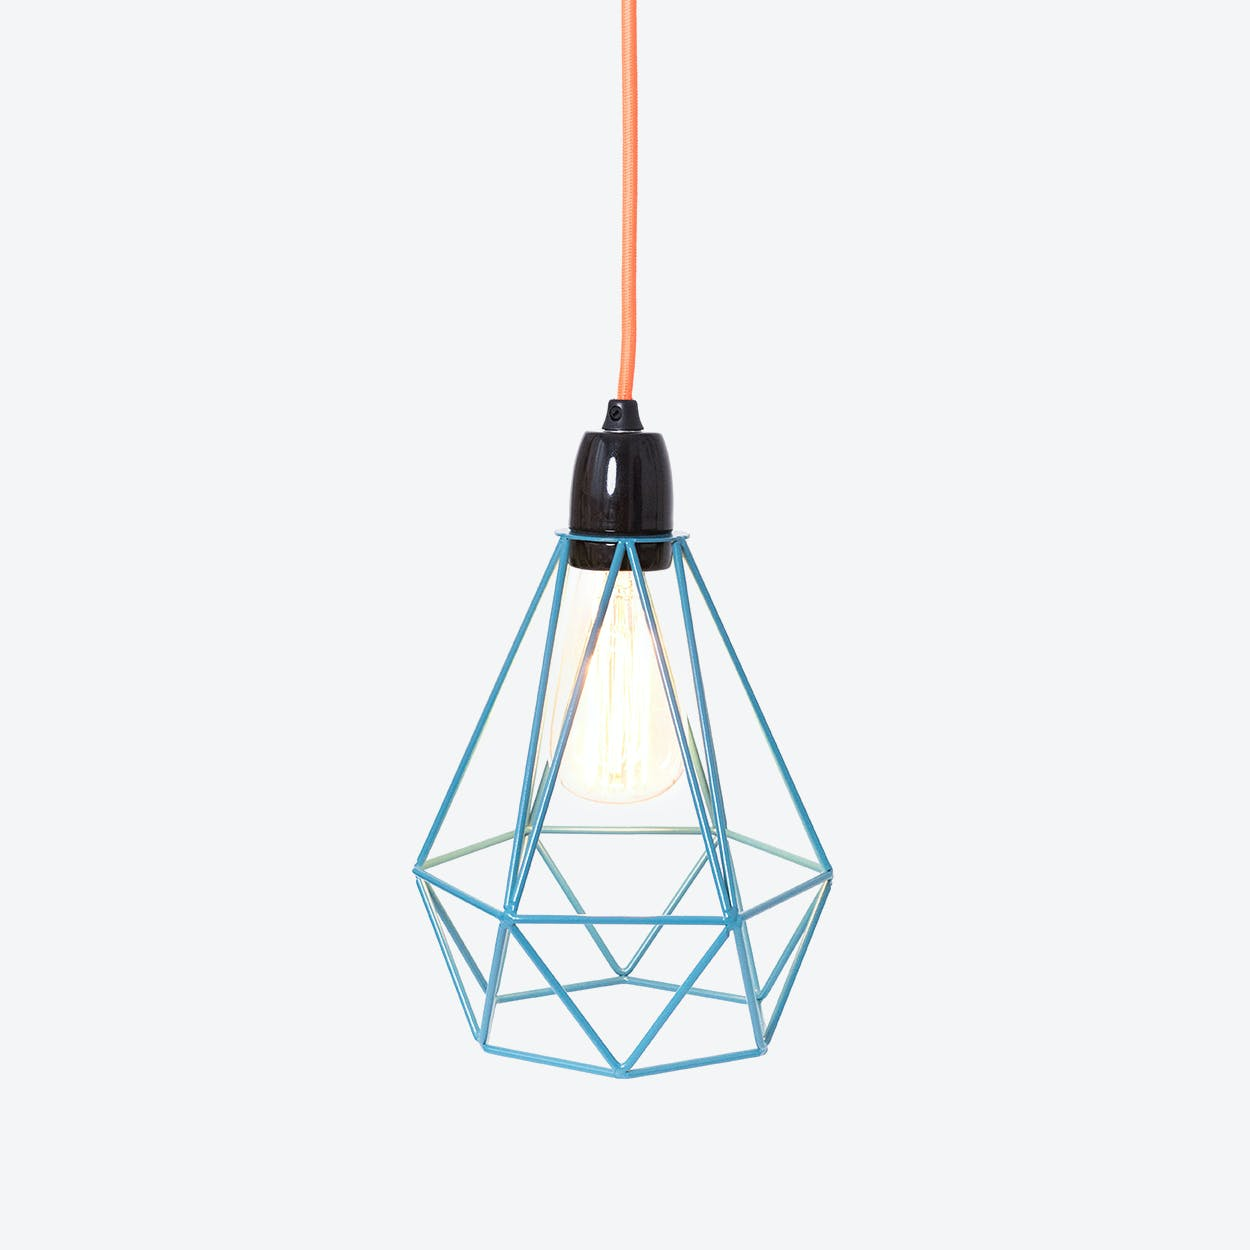 Industrial Pendant Light Diamond in Blue with Orange Cord